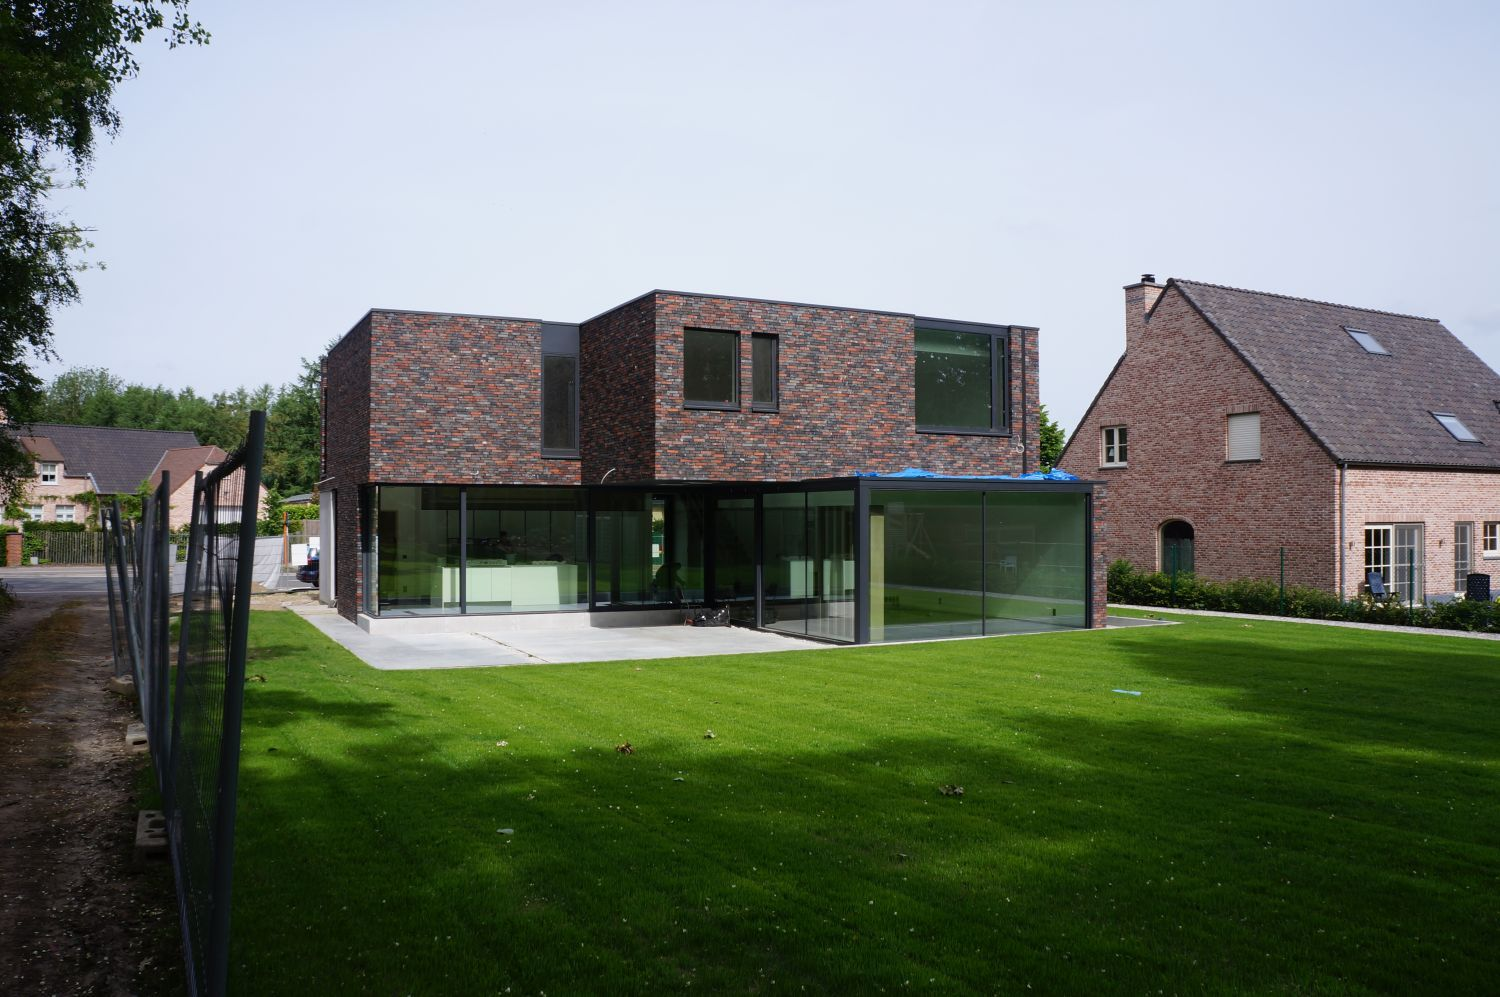 Moderne woning google zoeken moodboard huis exterieur pinterest architecture house and - Mooie moderne huis gevels ...